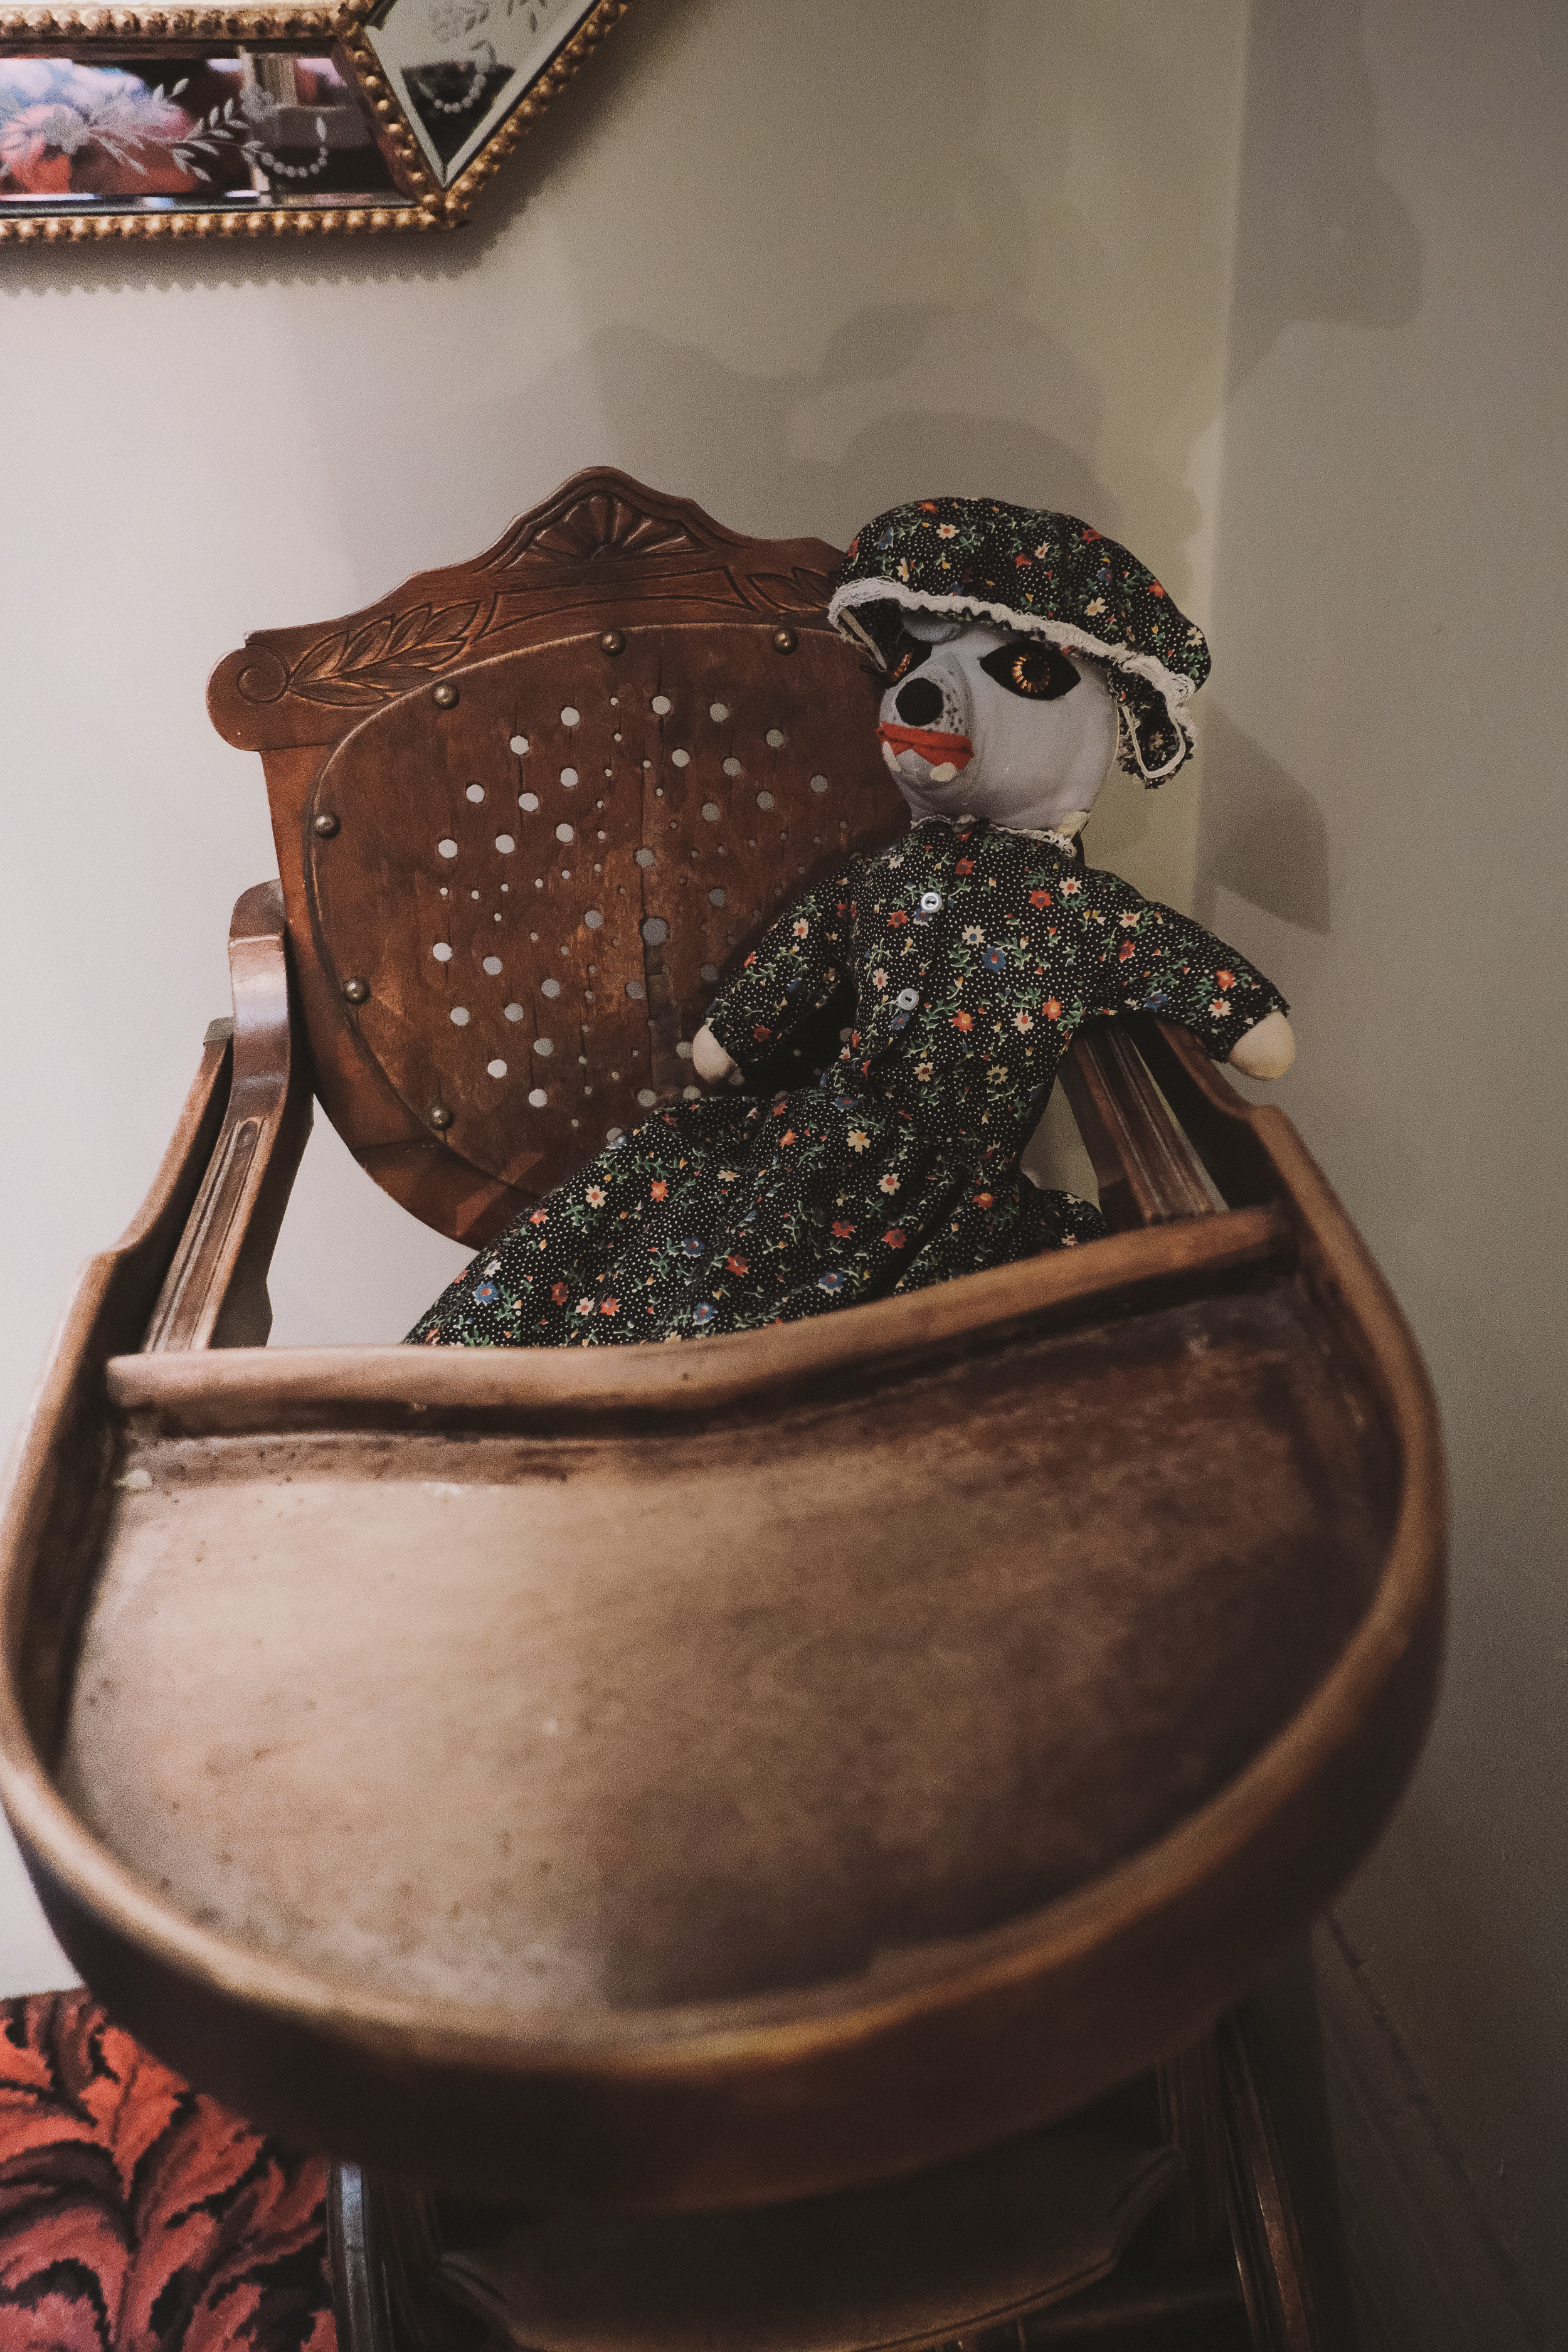 La Rosa Hotel Whitby // Victorian Weasel // By Wedding Photographer Barry Forshaw